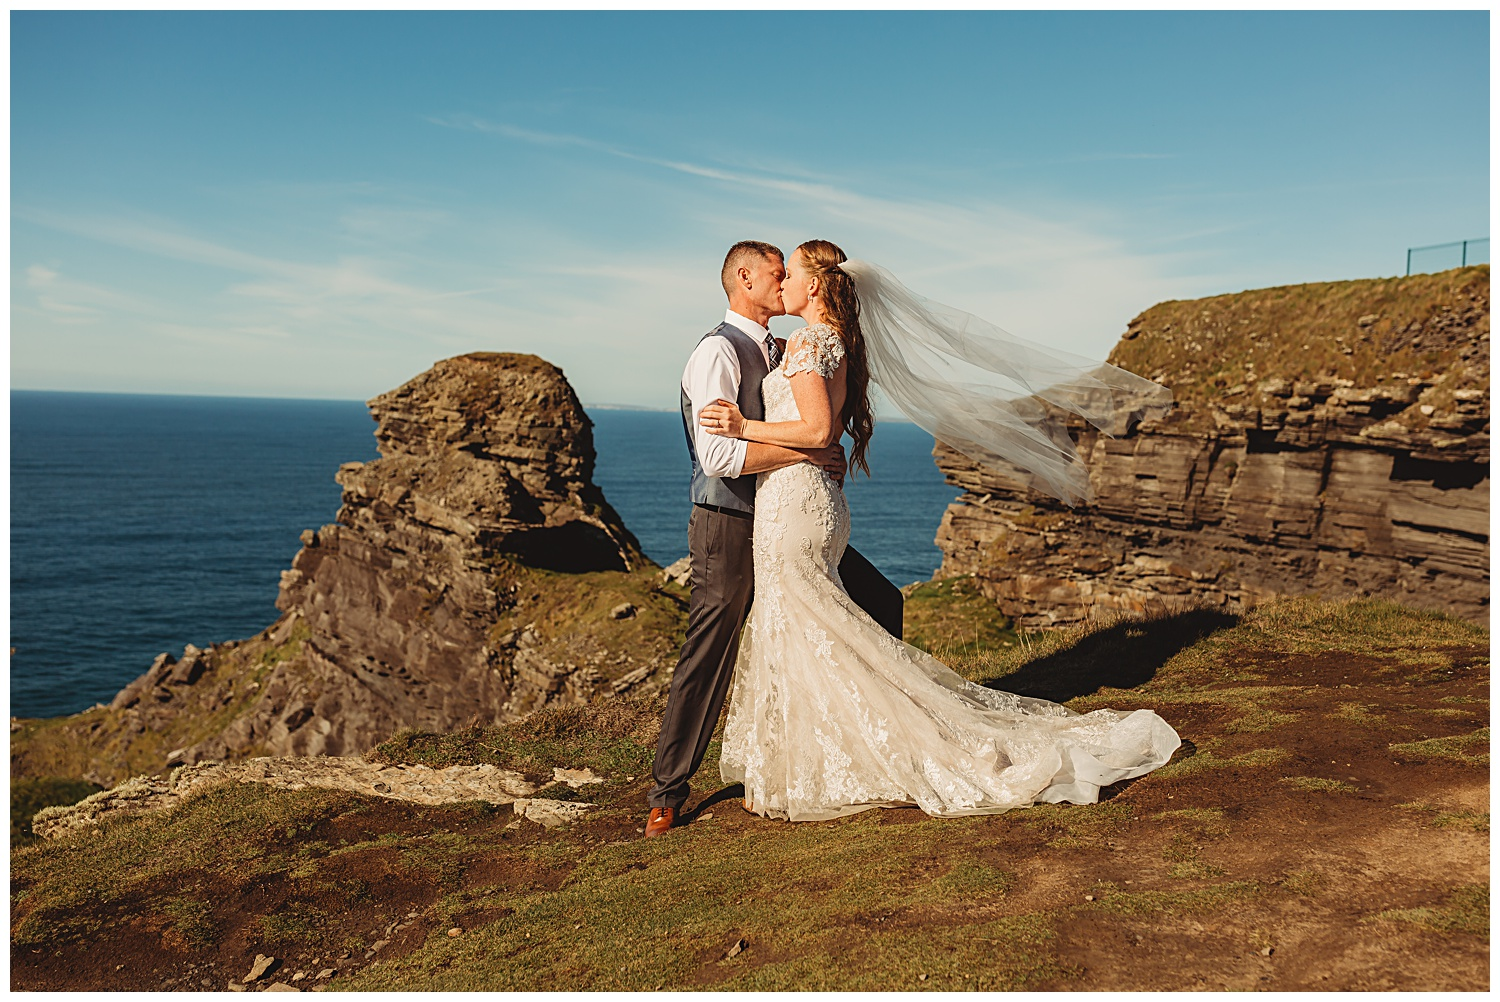 The Cliffs of Moher Destination Wedding Liscannor, County Clare, Ireland_1262.jpg